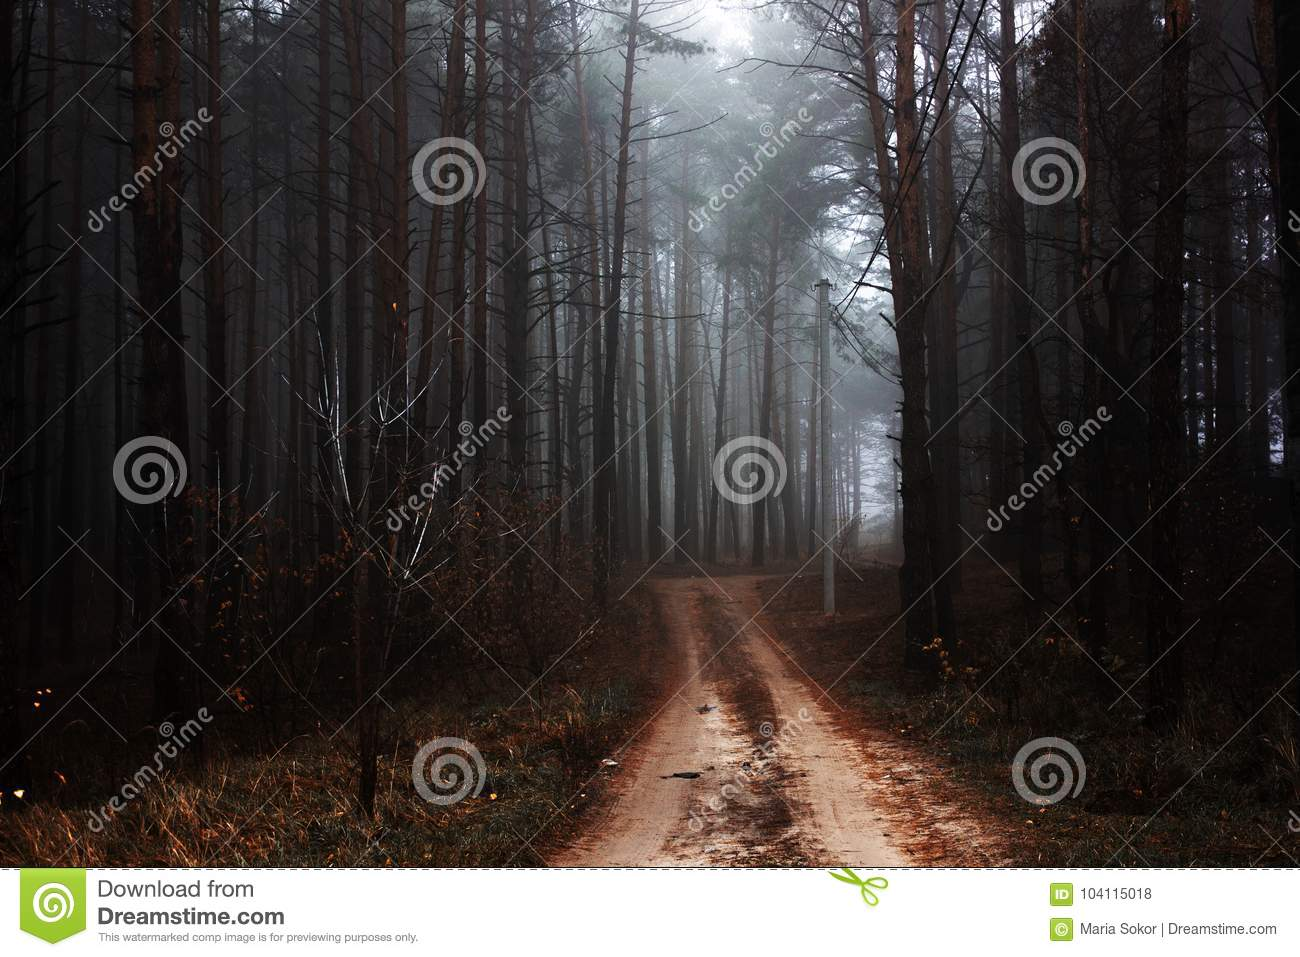 Morning Mystical autumn red forest with road in fog. Fall misty woods. Colorful landscape with trees rural road orange and red lea